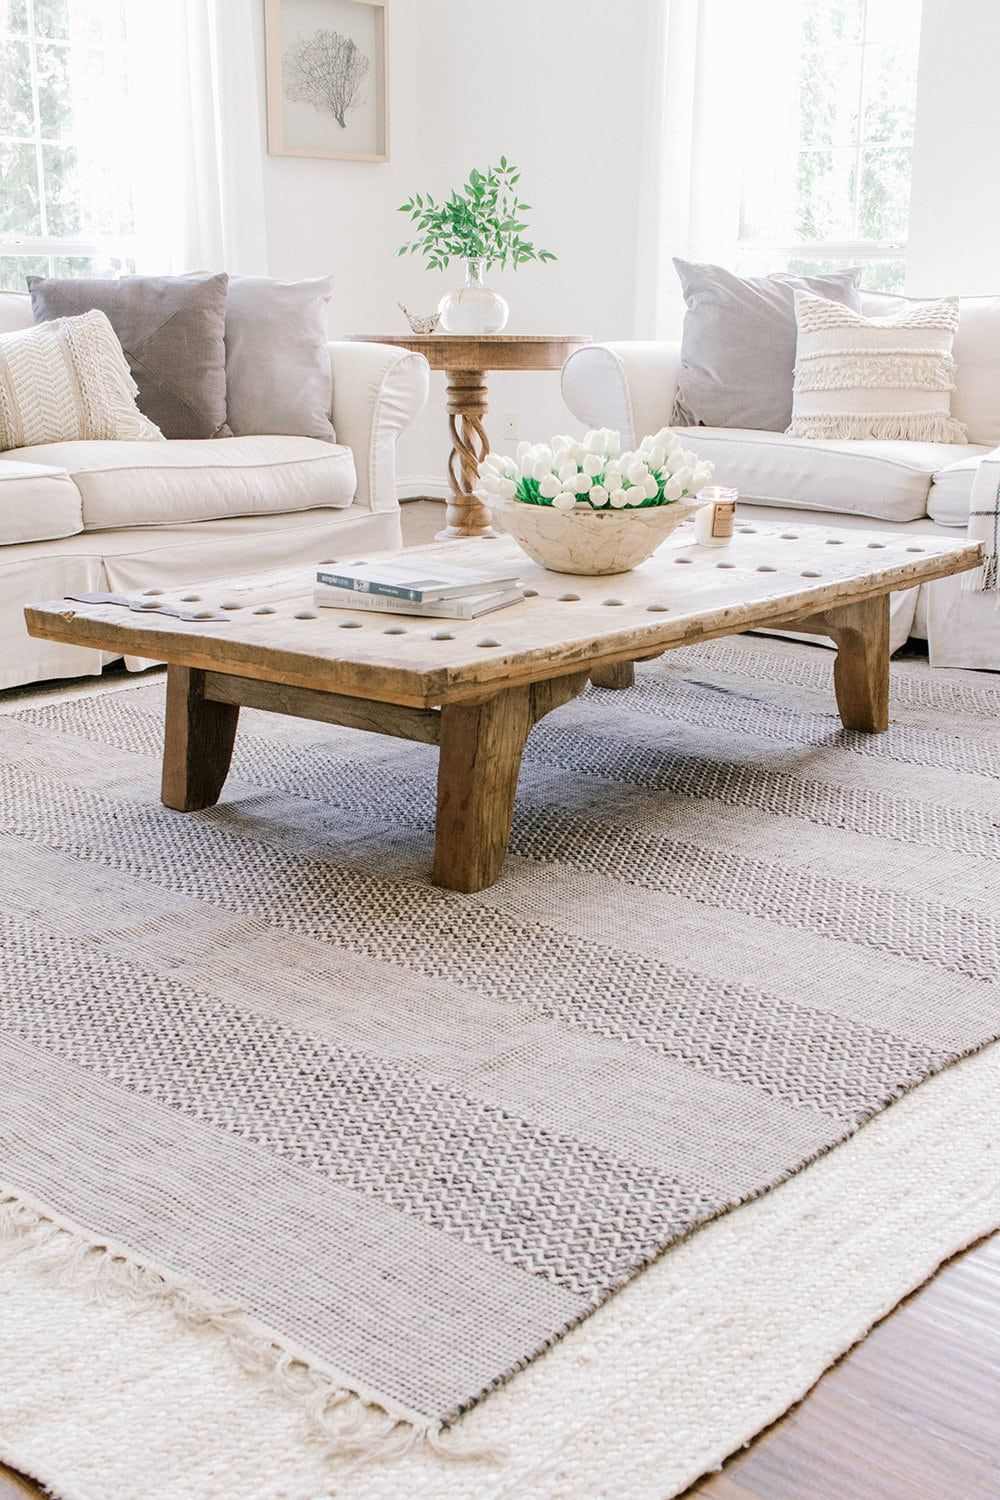 Home Decorating Trends 2020 Farmhouse Rugs Living Room Trending Decor Rugs In Living Room